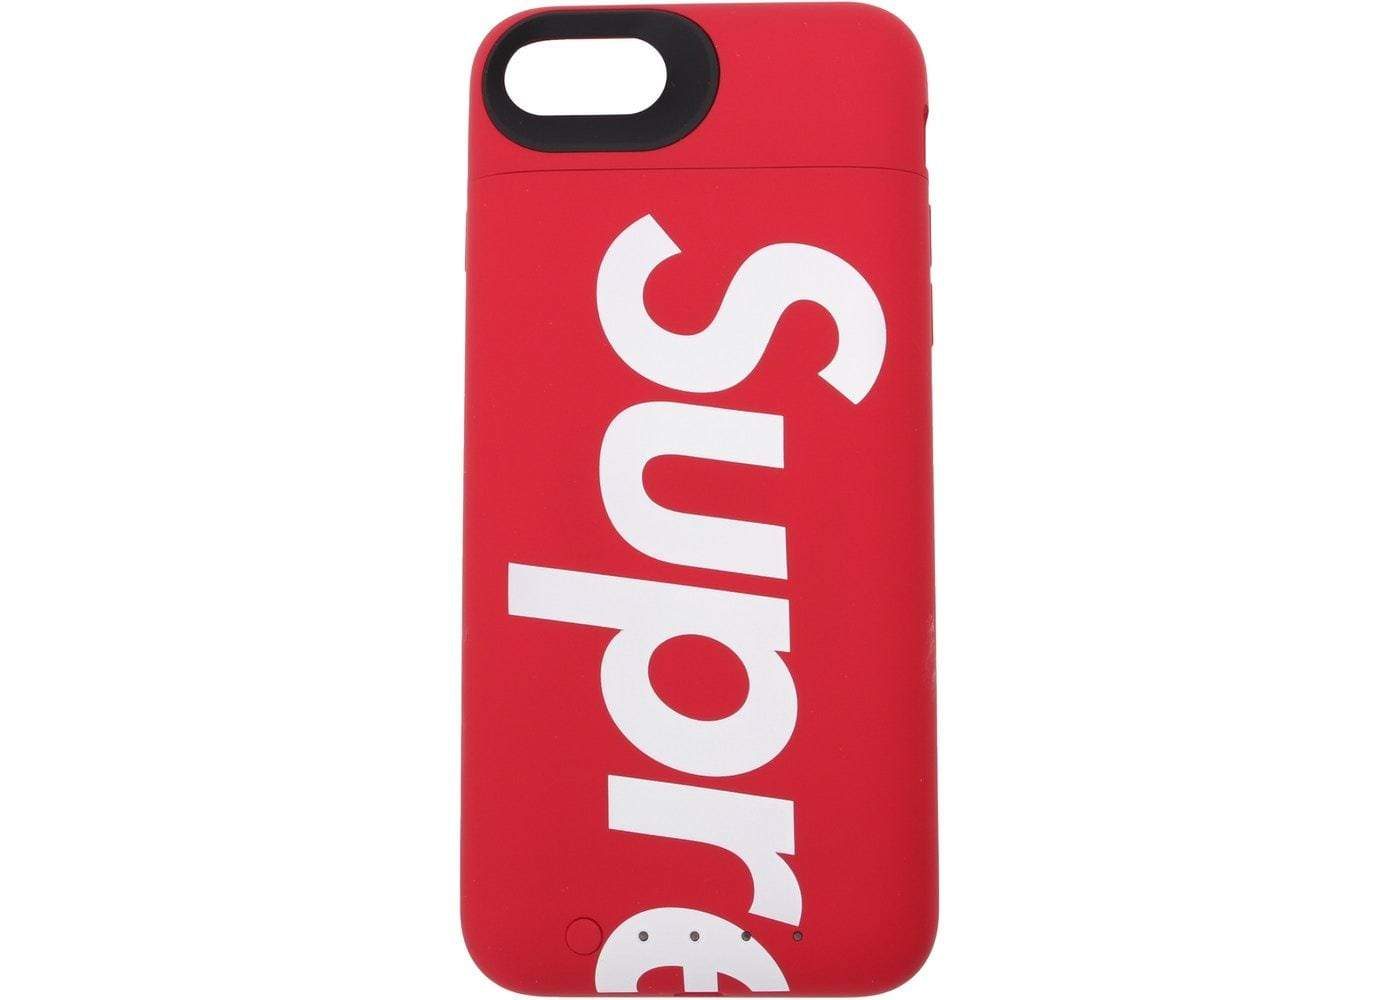 iphone 7 case only